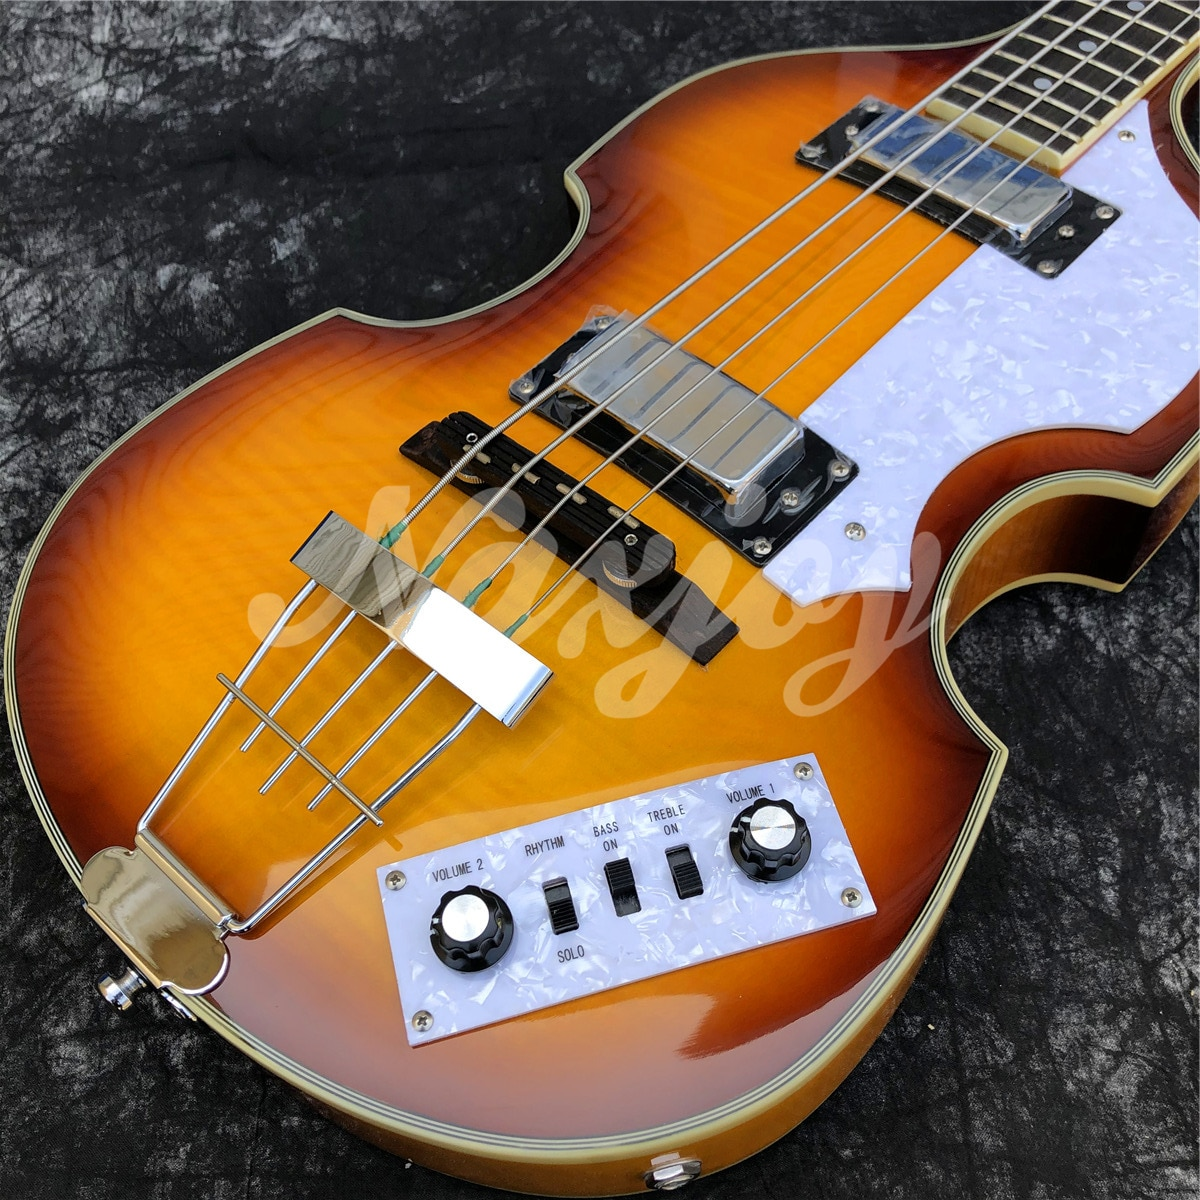 Hofner 4 Strings Electric Bass Sunbrust Flame Maple Hollow Body Vintage CT Violin BB2 Electric Bass Guitar enlarge